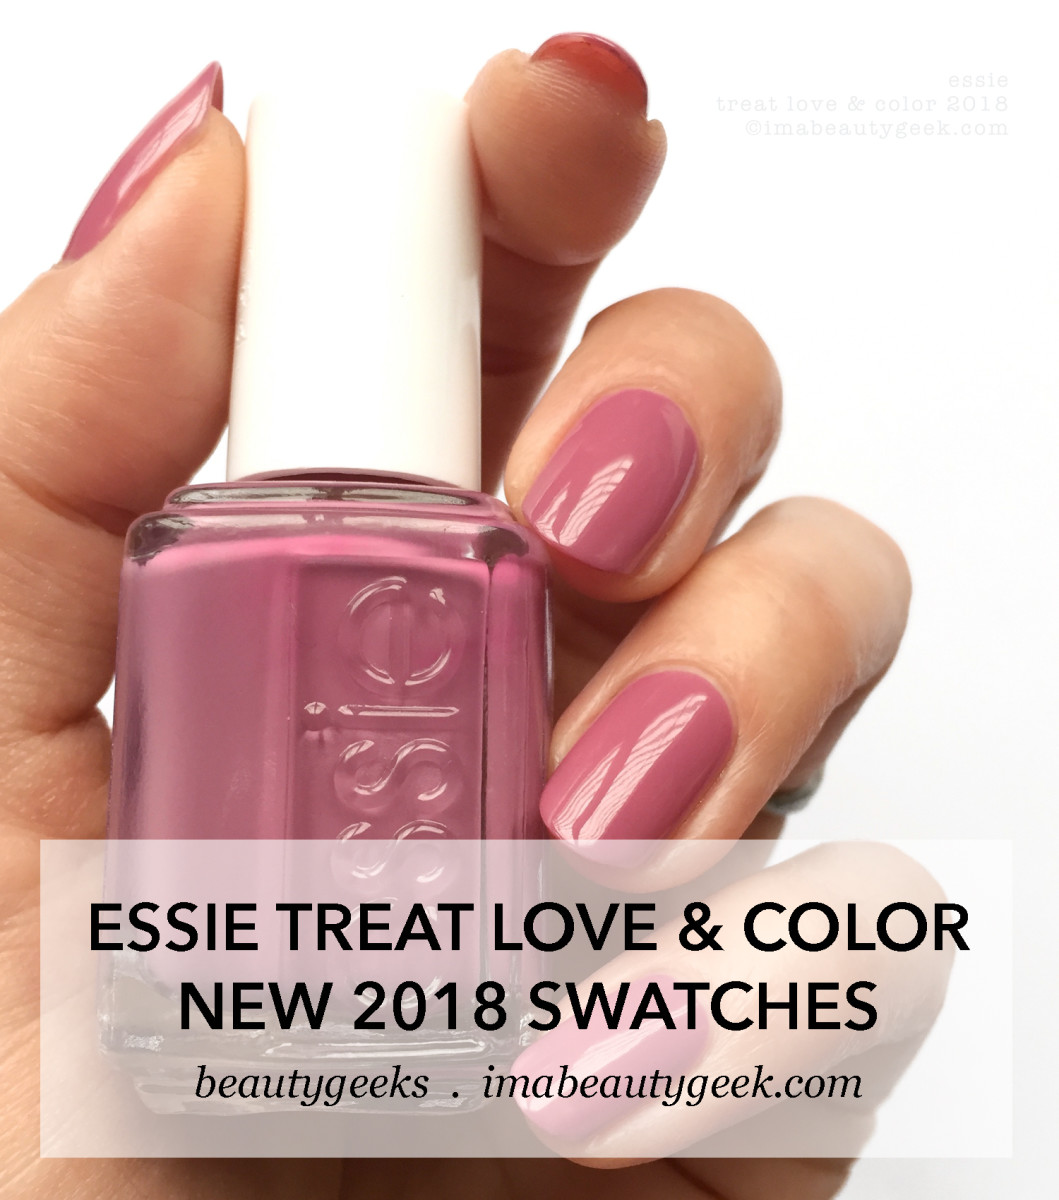 Essie Treat Love And Color Swatches 2018 Beautygeeks